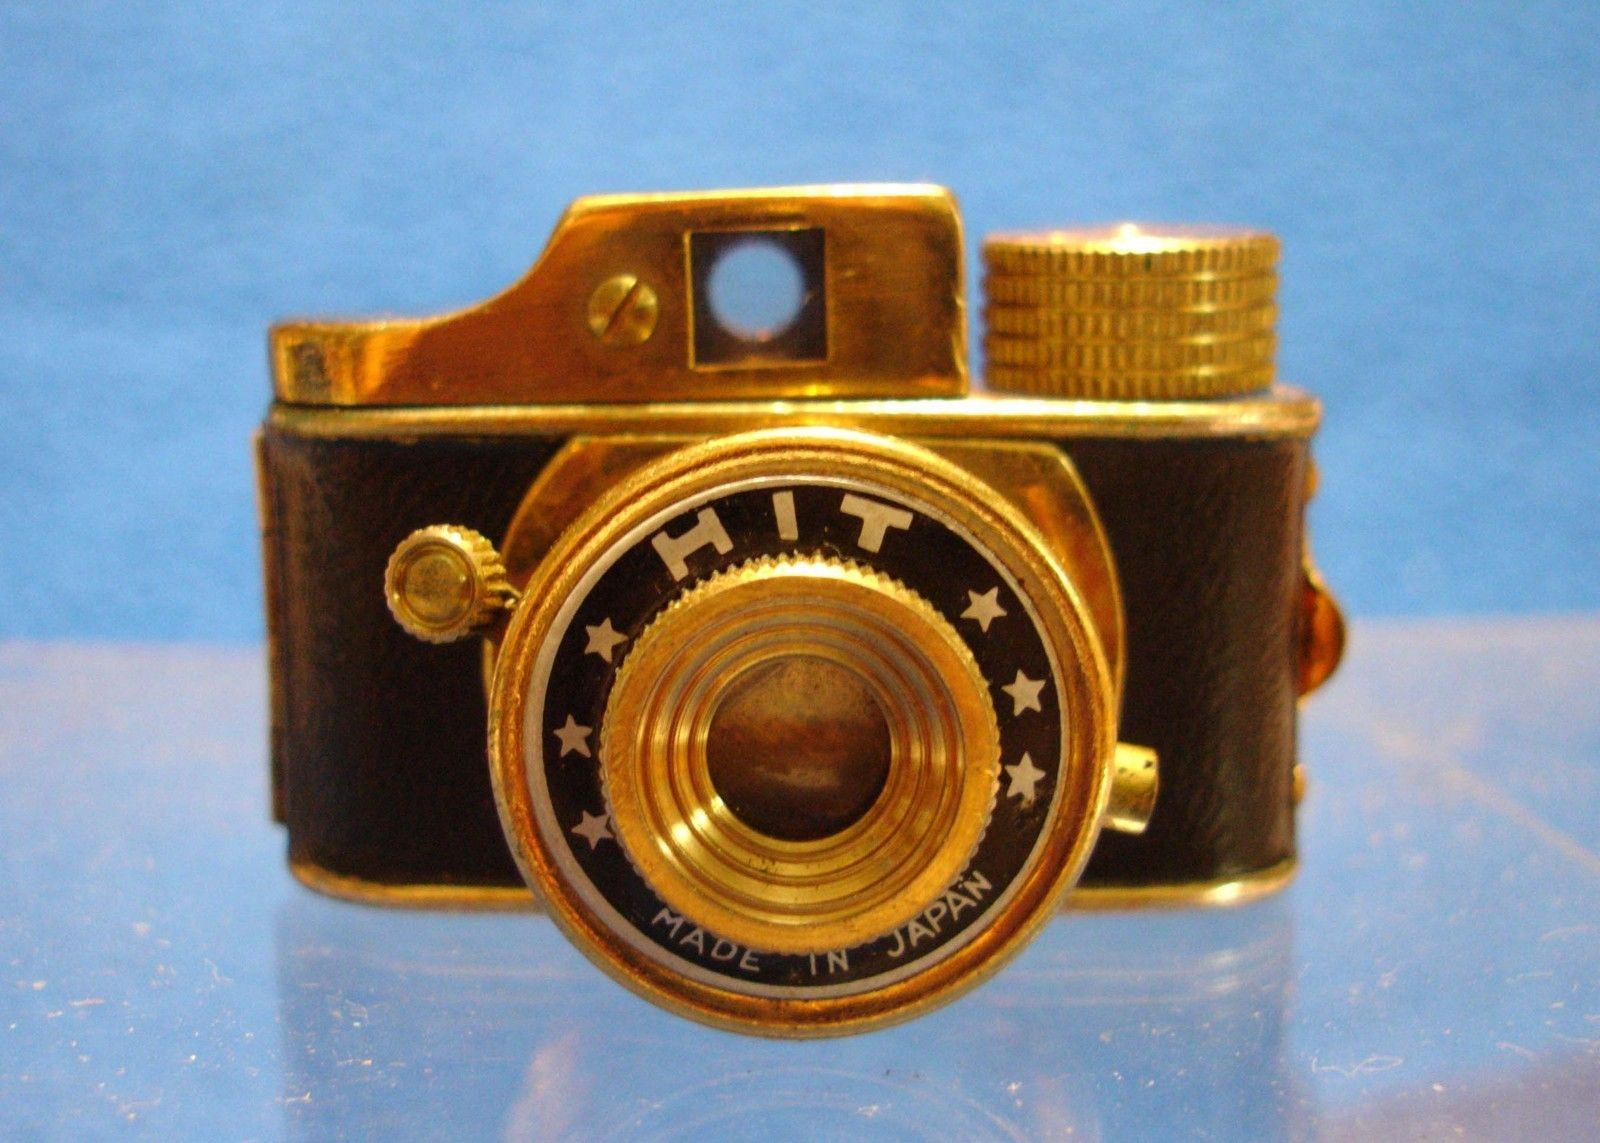 Hit Subminiature 16mm Camera Gold Vintage 1950s Japanese Spy Camera